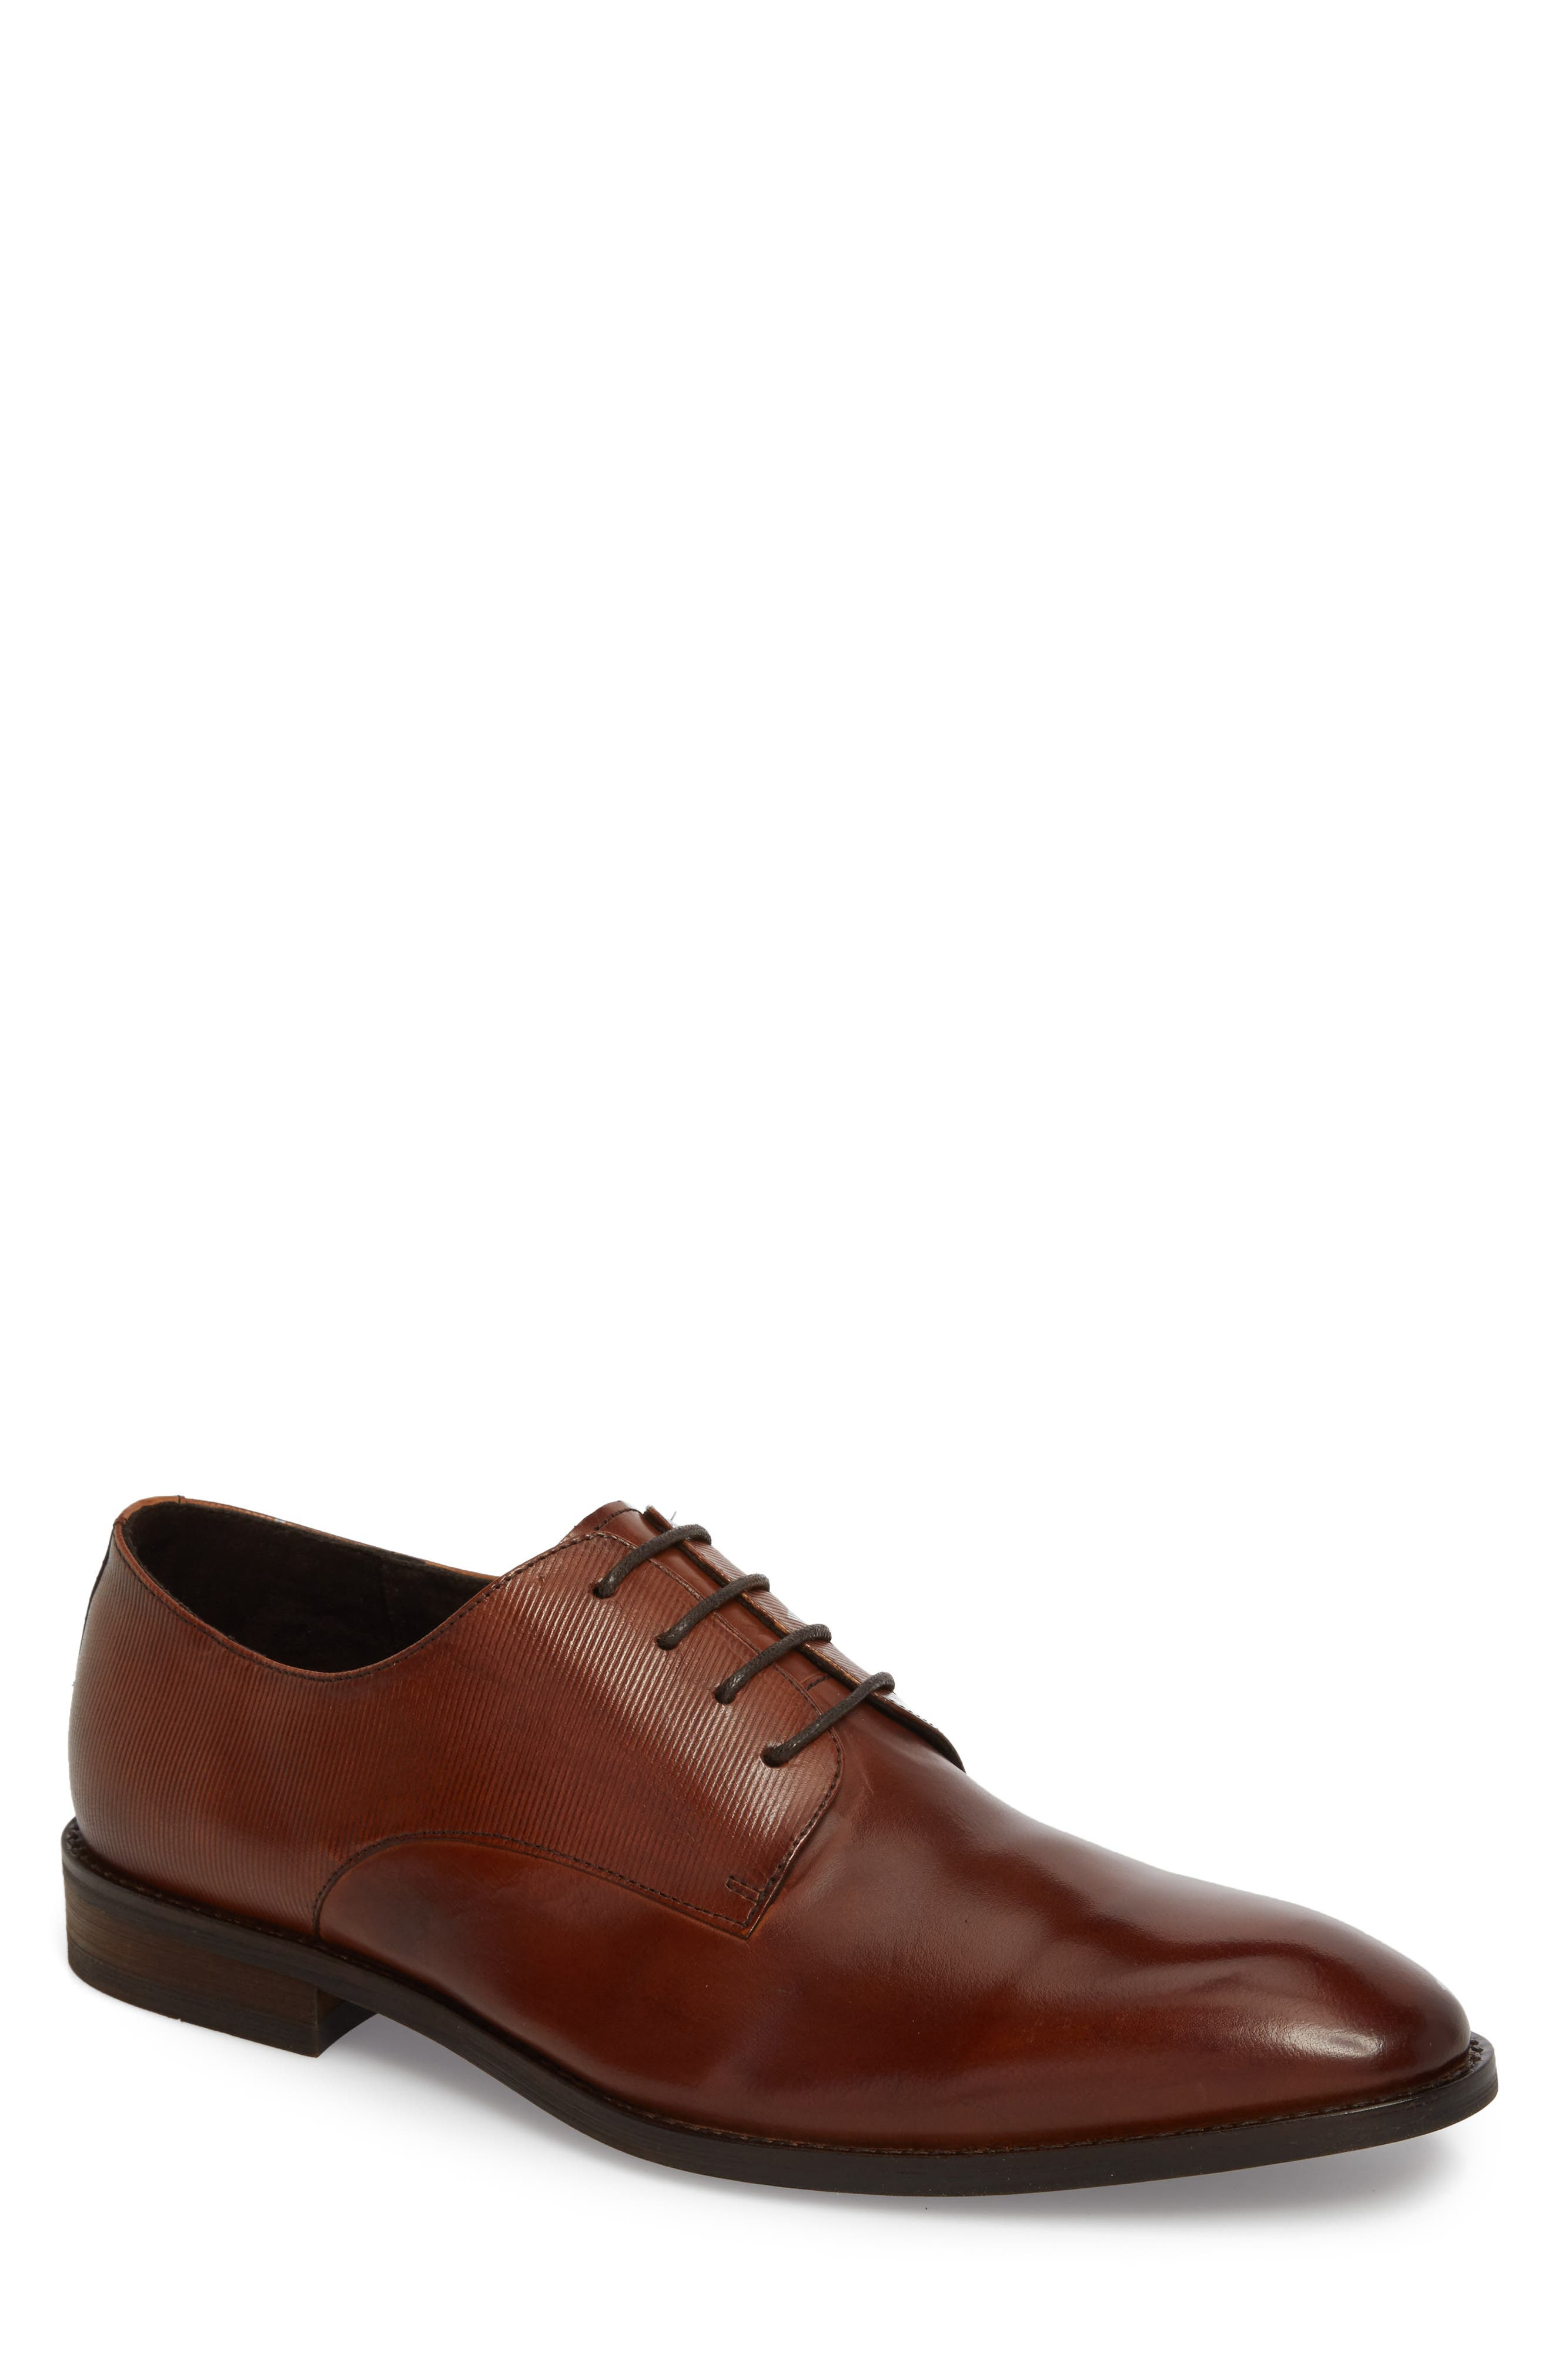 KENNETH COLE NEW YORK,                             Courage Plain Toe Derby,                             Main thumbnail 1, color,                             COGNAC LEATHER